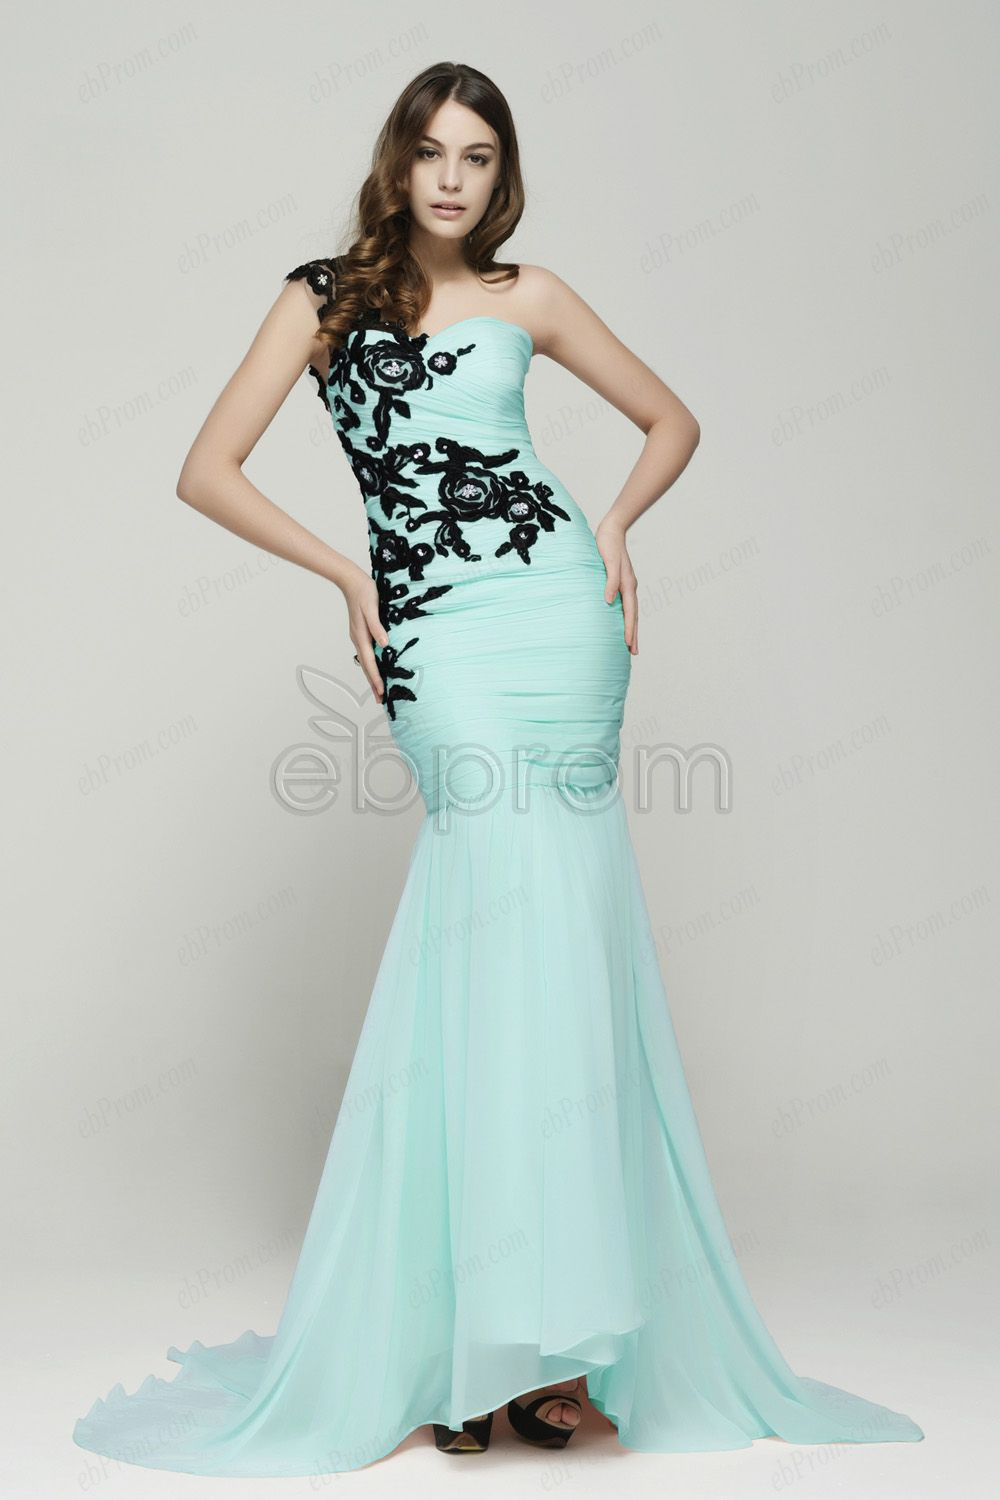 Light blue mermaid prom dress with black lace | Black laces, Lace ...